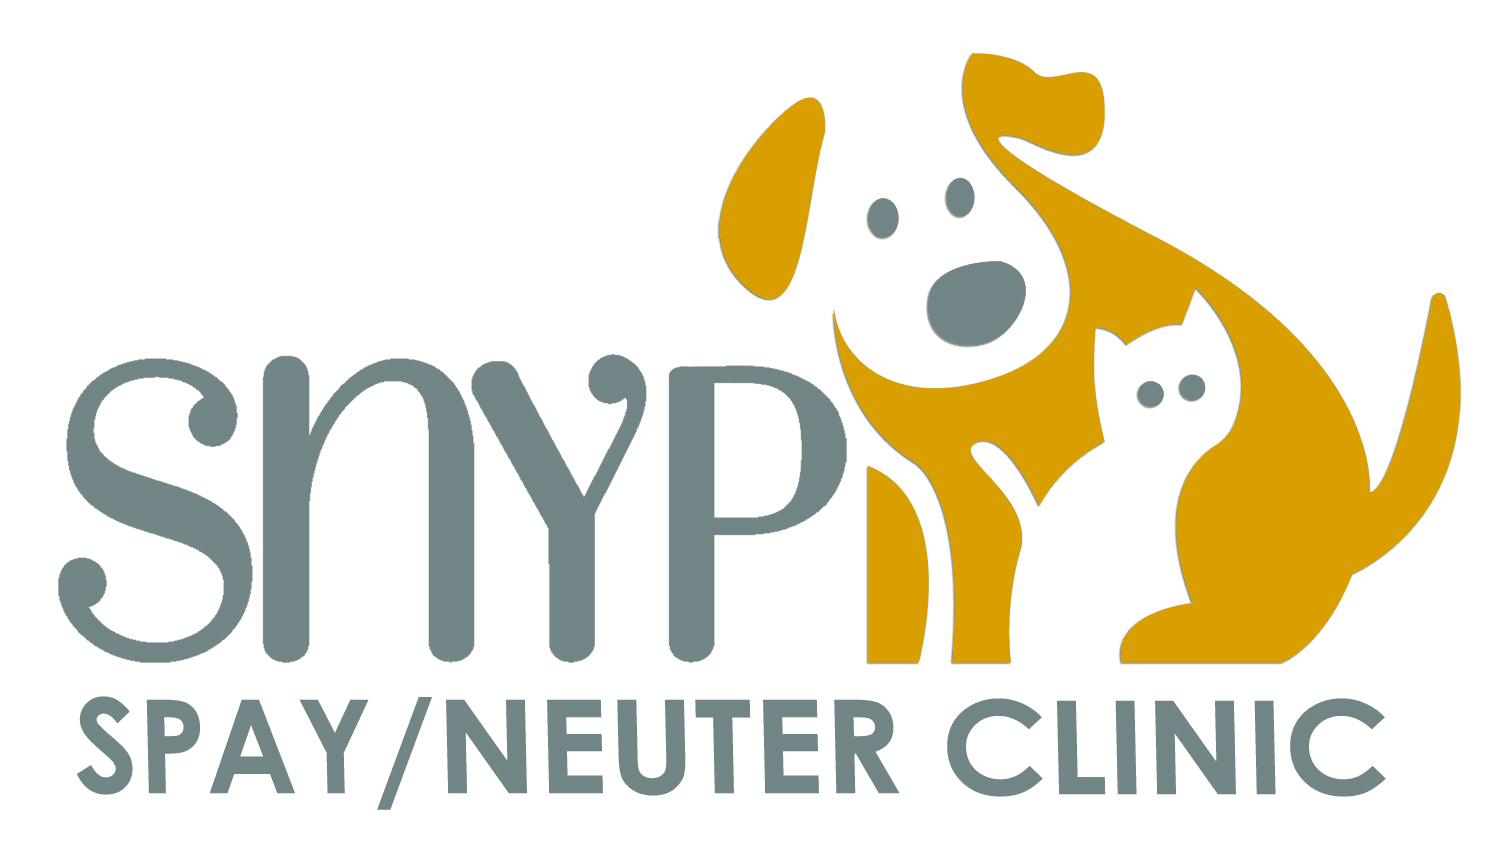 Spay/Neuter Your Pet (SNYP)